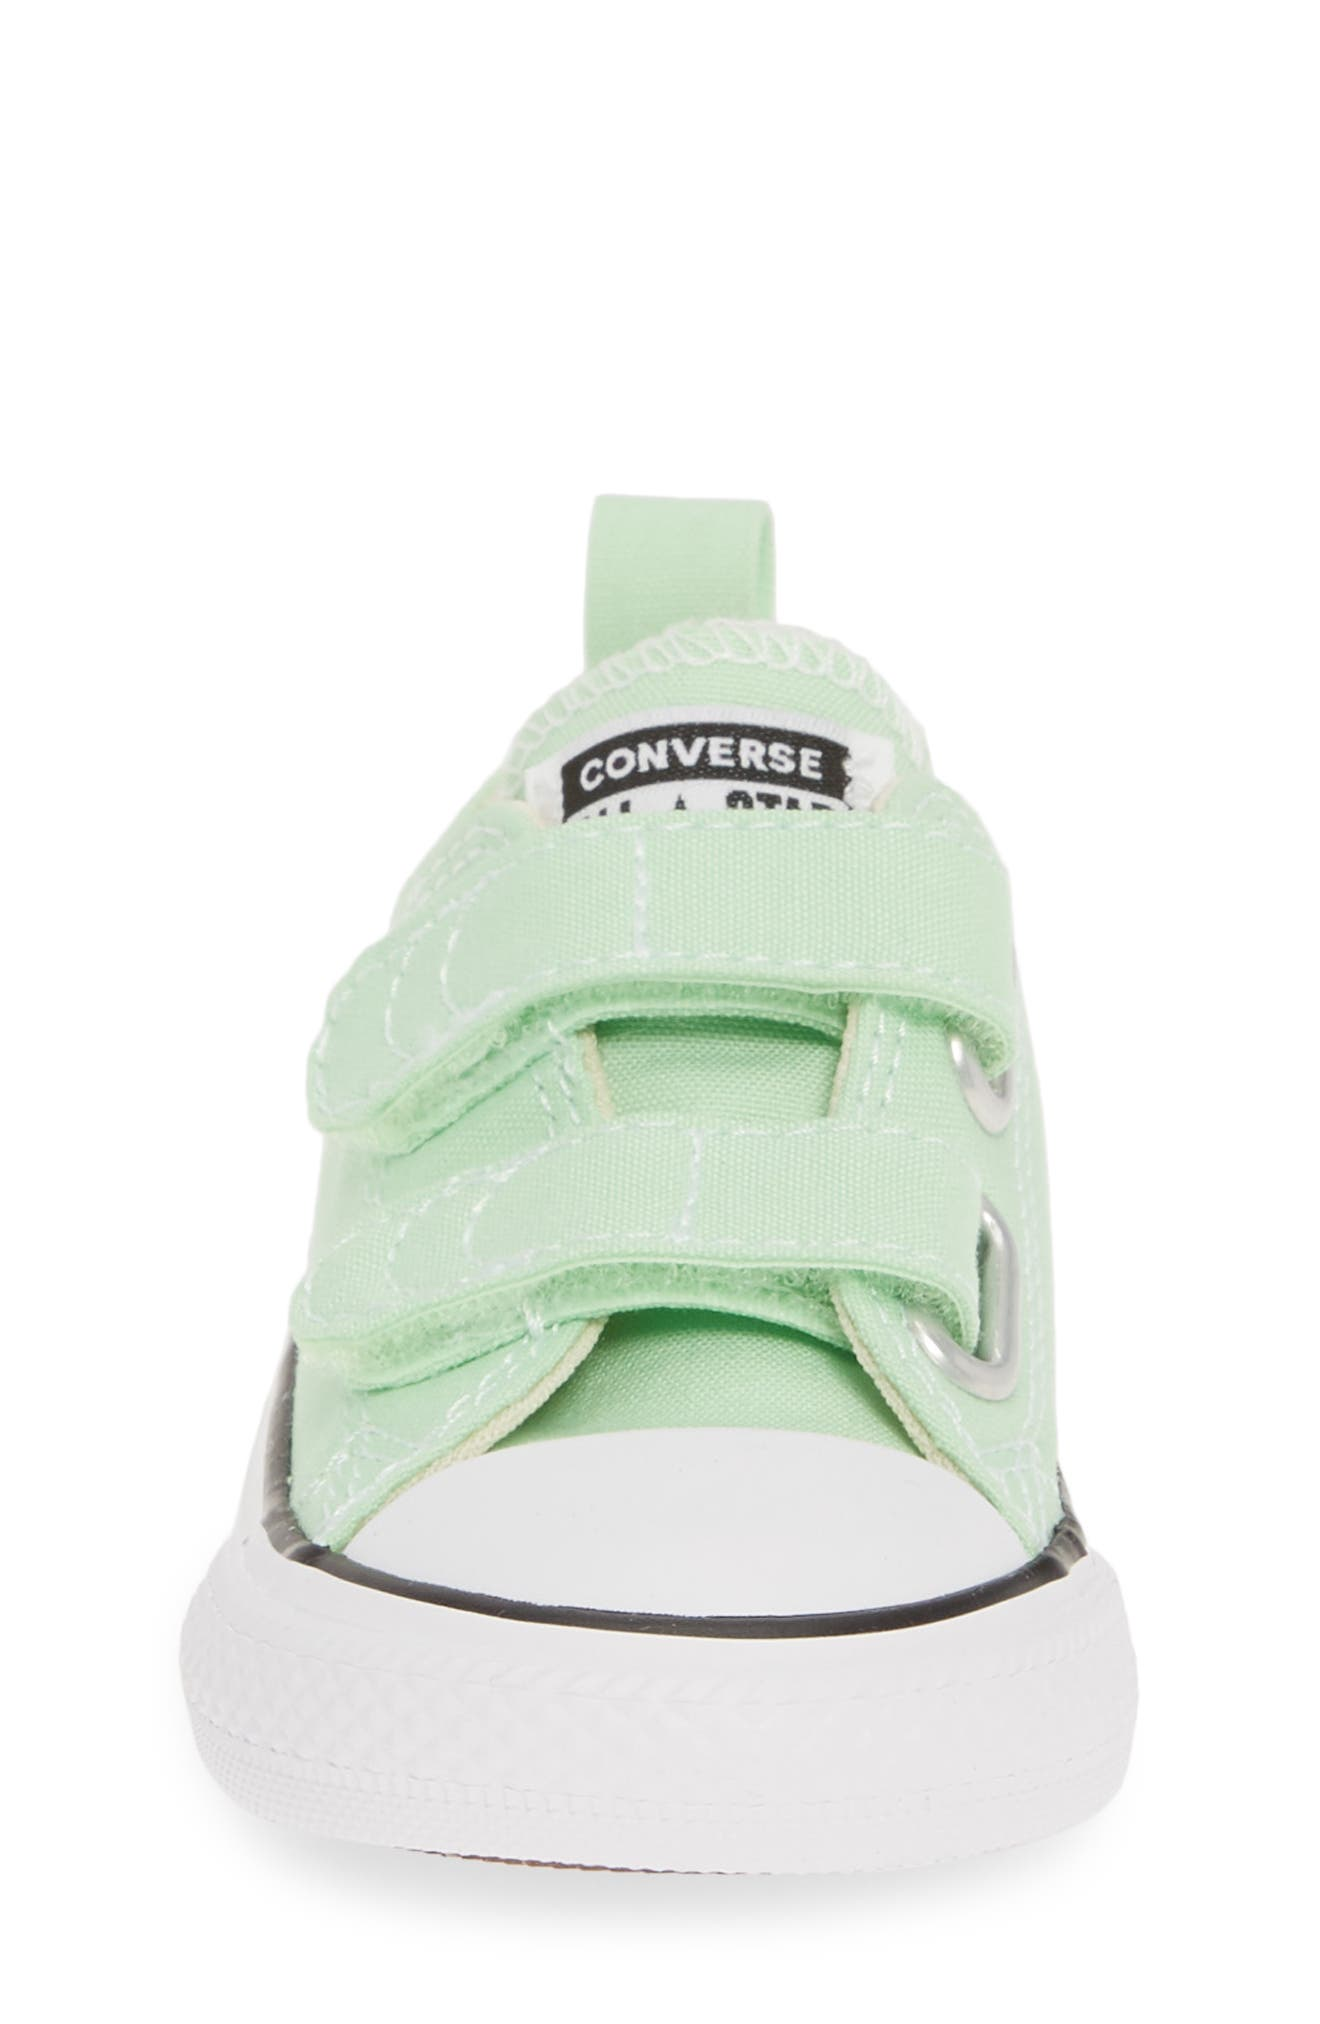 CONVERSE, Chuck Taylor<sup>®</sup> 'Double Strap' Sneaker, Alternate thumbnail 4, color, LT. APHID GREEN